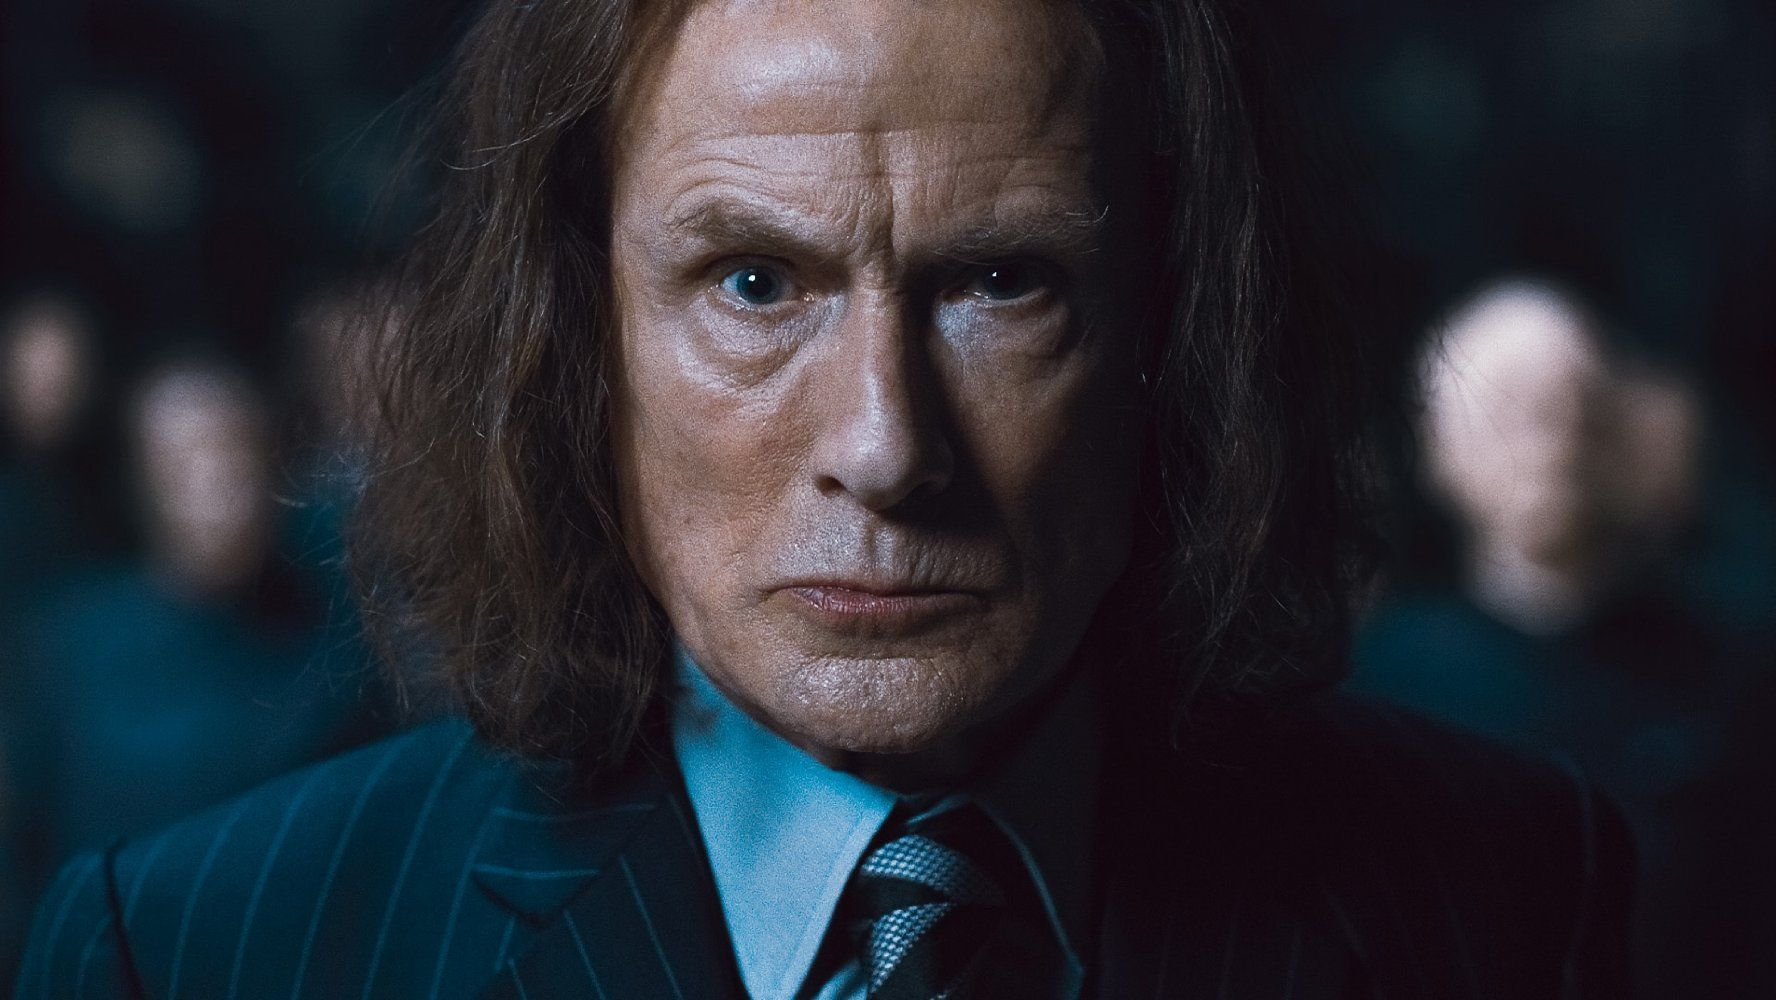 Bill Nighy In Harry Potter And The Deathly Hallows Part 1 2010 Harry Potter Characters Harry Potter Movies Bill Nighy